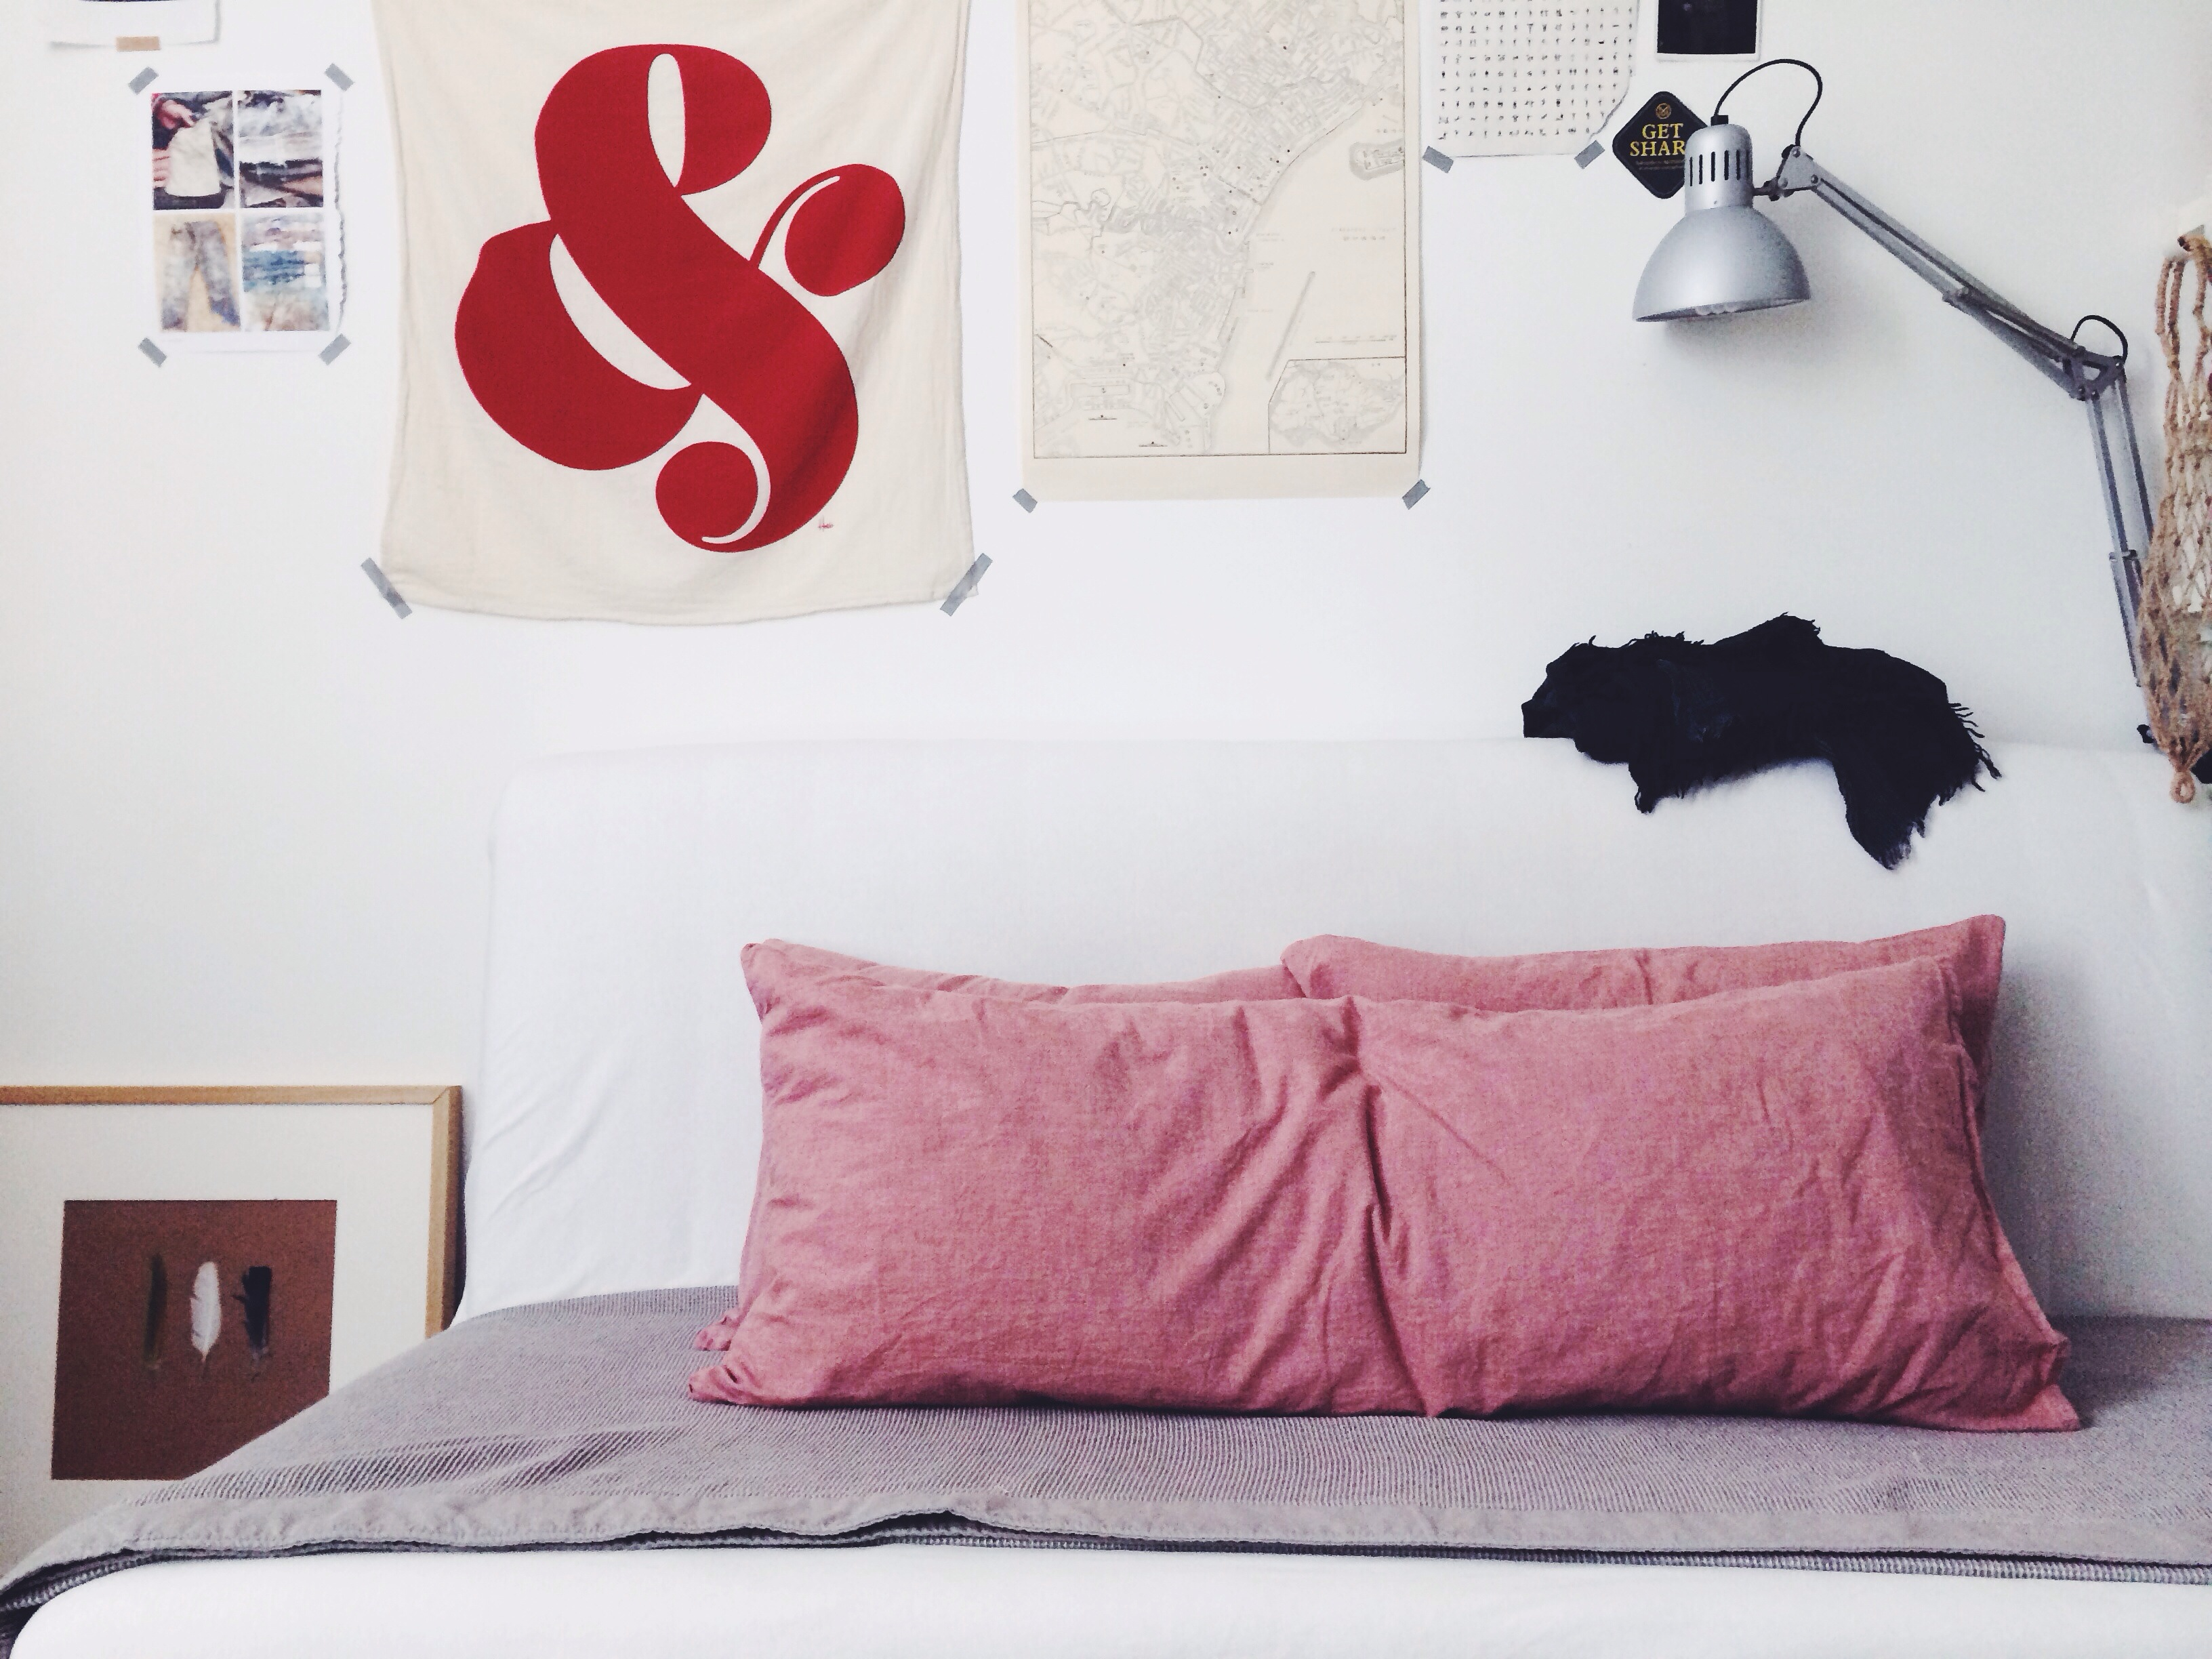 My IKEA PS HÅVET Sofa Bed Is Adorn By Pillows And Blanket From MUJI. The